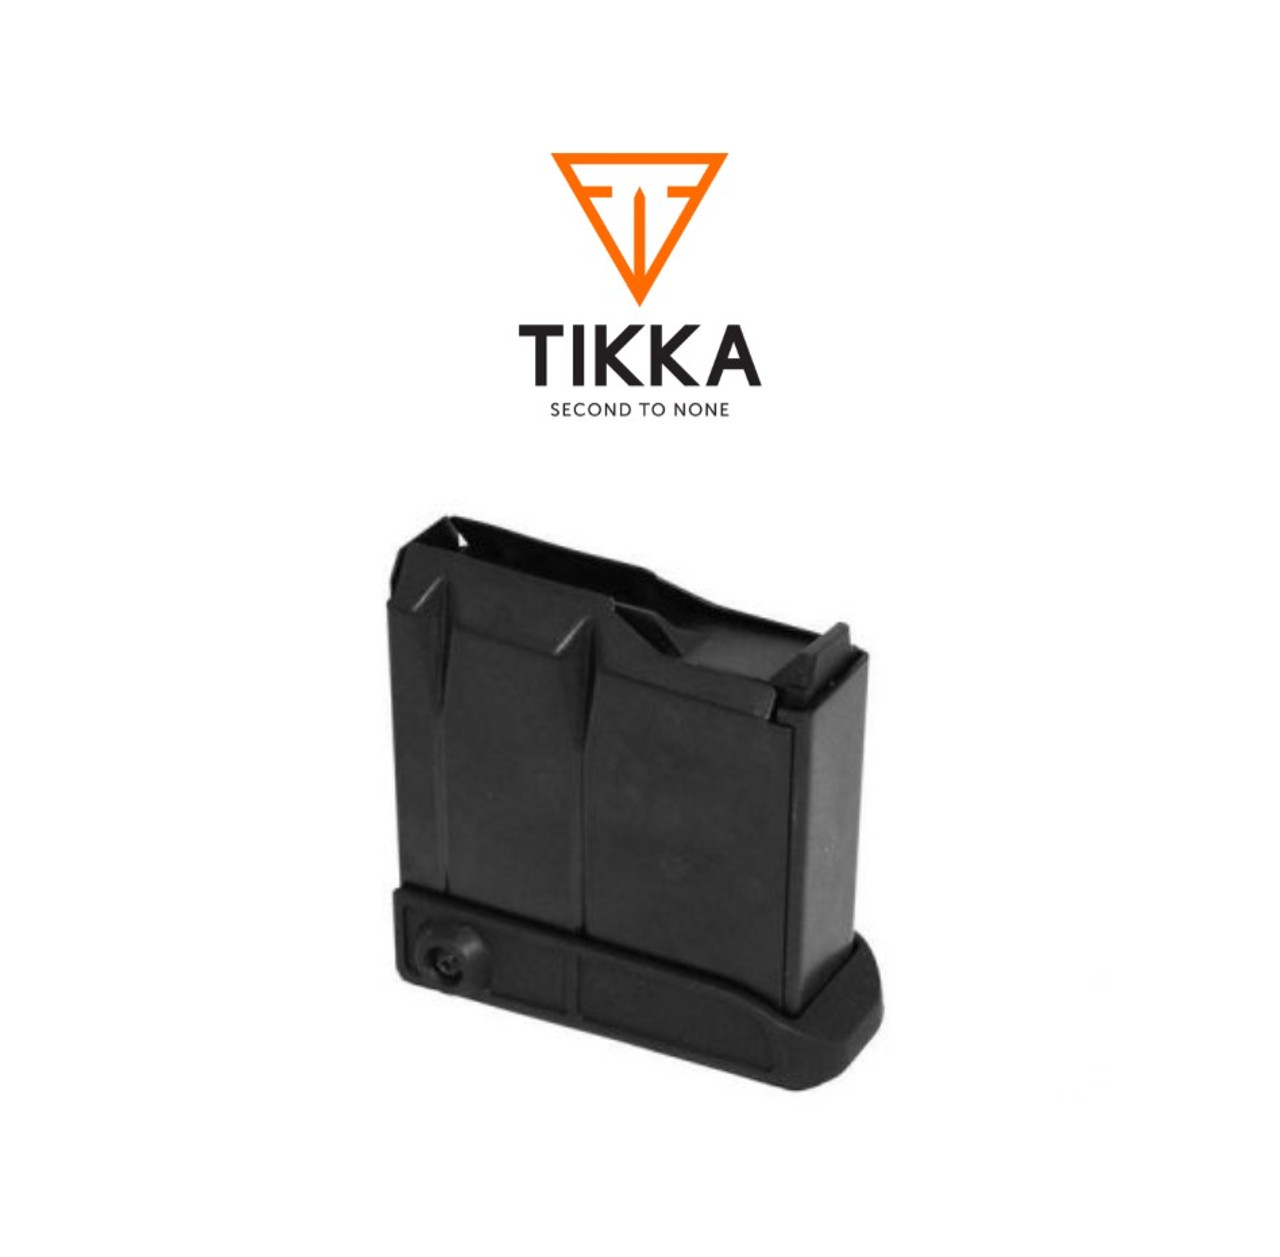 Tikka Magazine T3 and T3X CTR Series - 308 WIN 10-Round